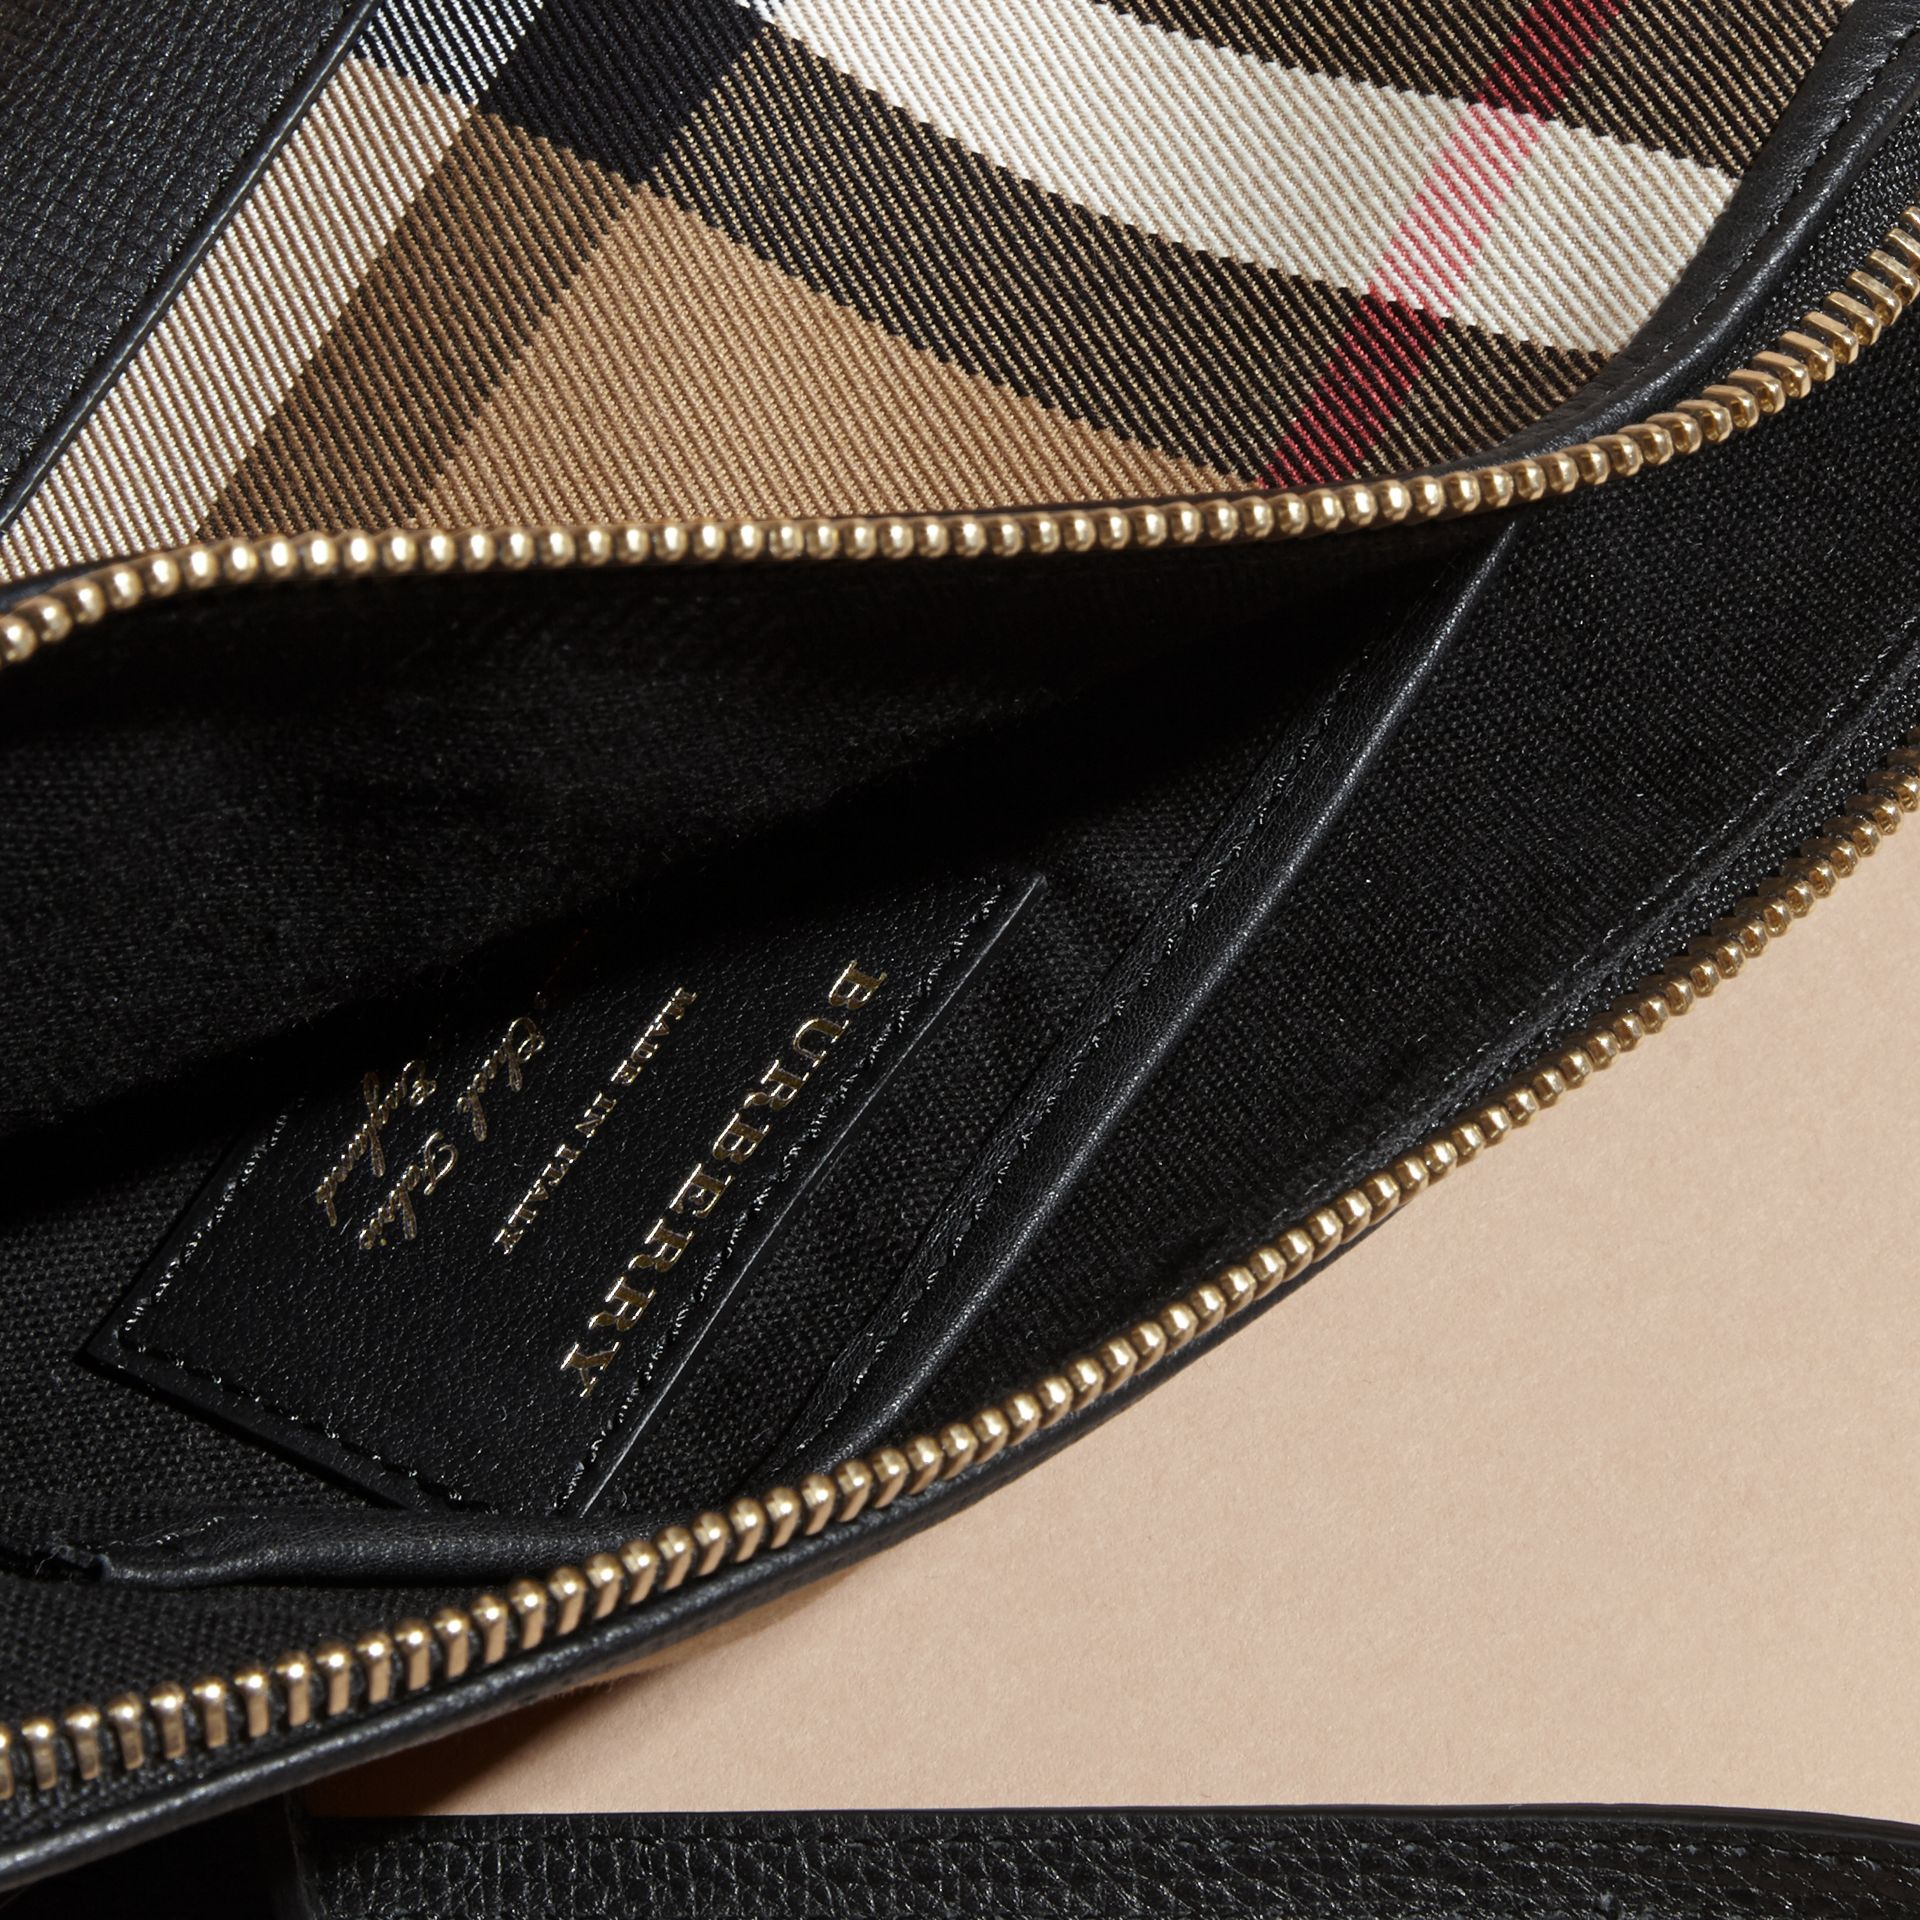 House Check and Leather Clutch Bag in Black - Women | Burberry Canada - gallery image 6